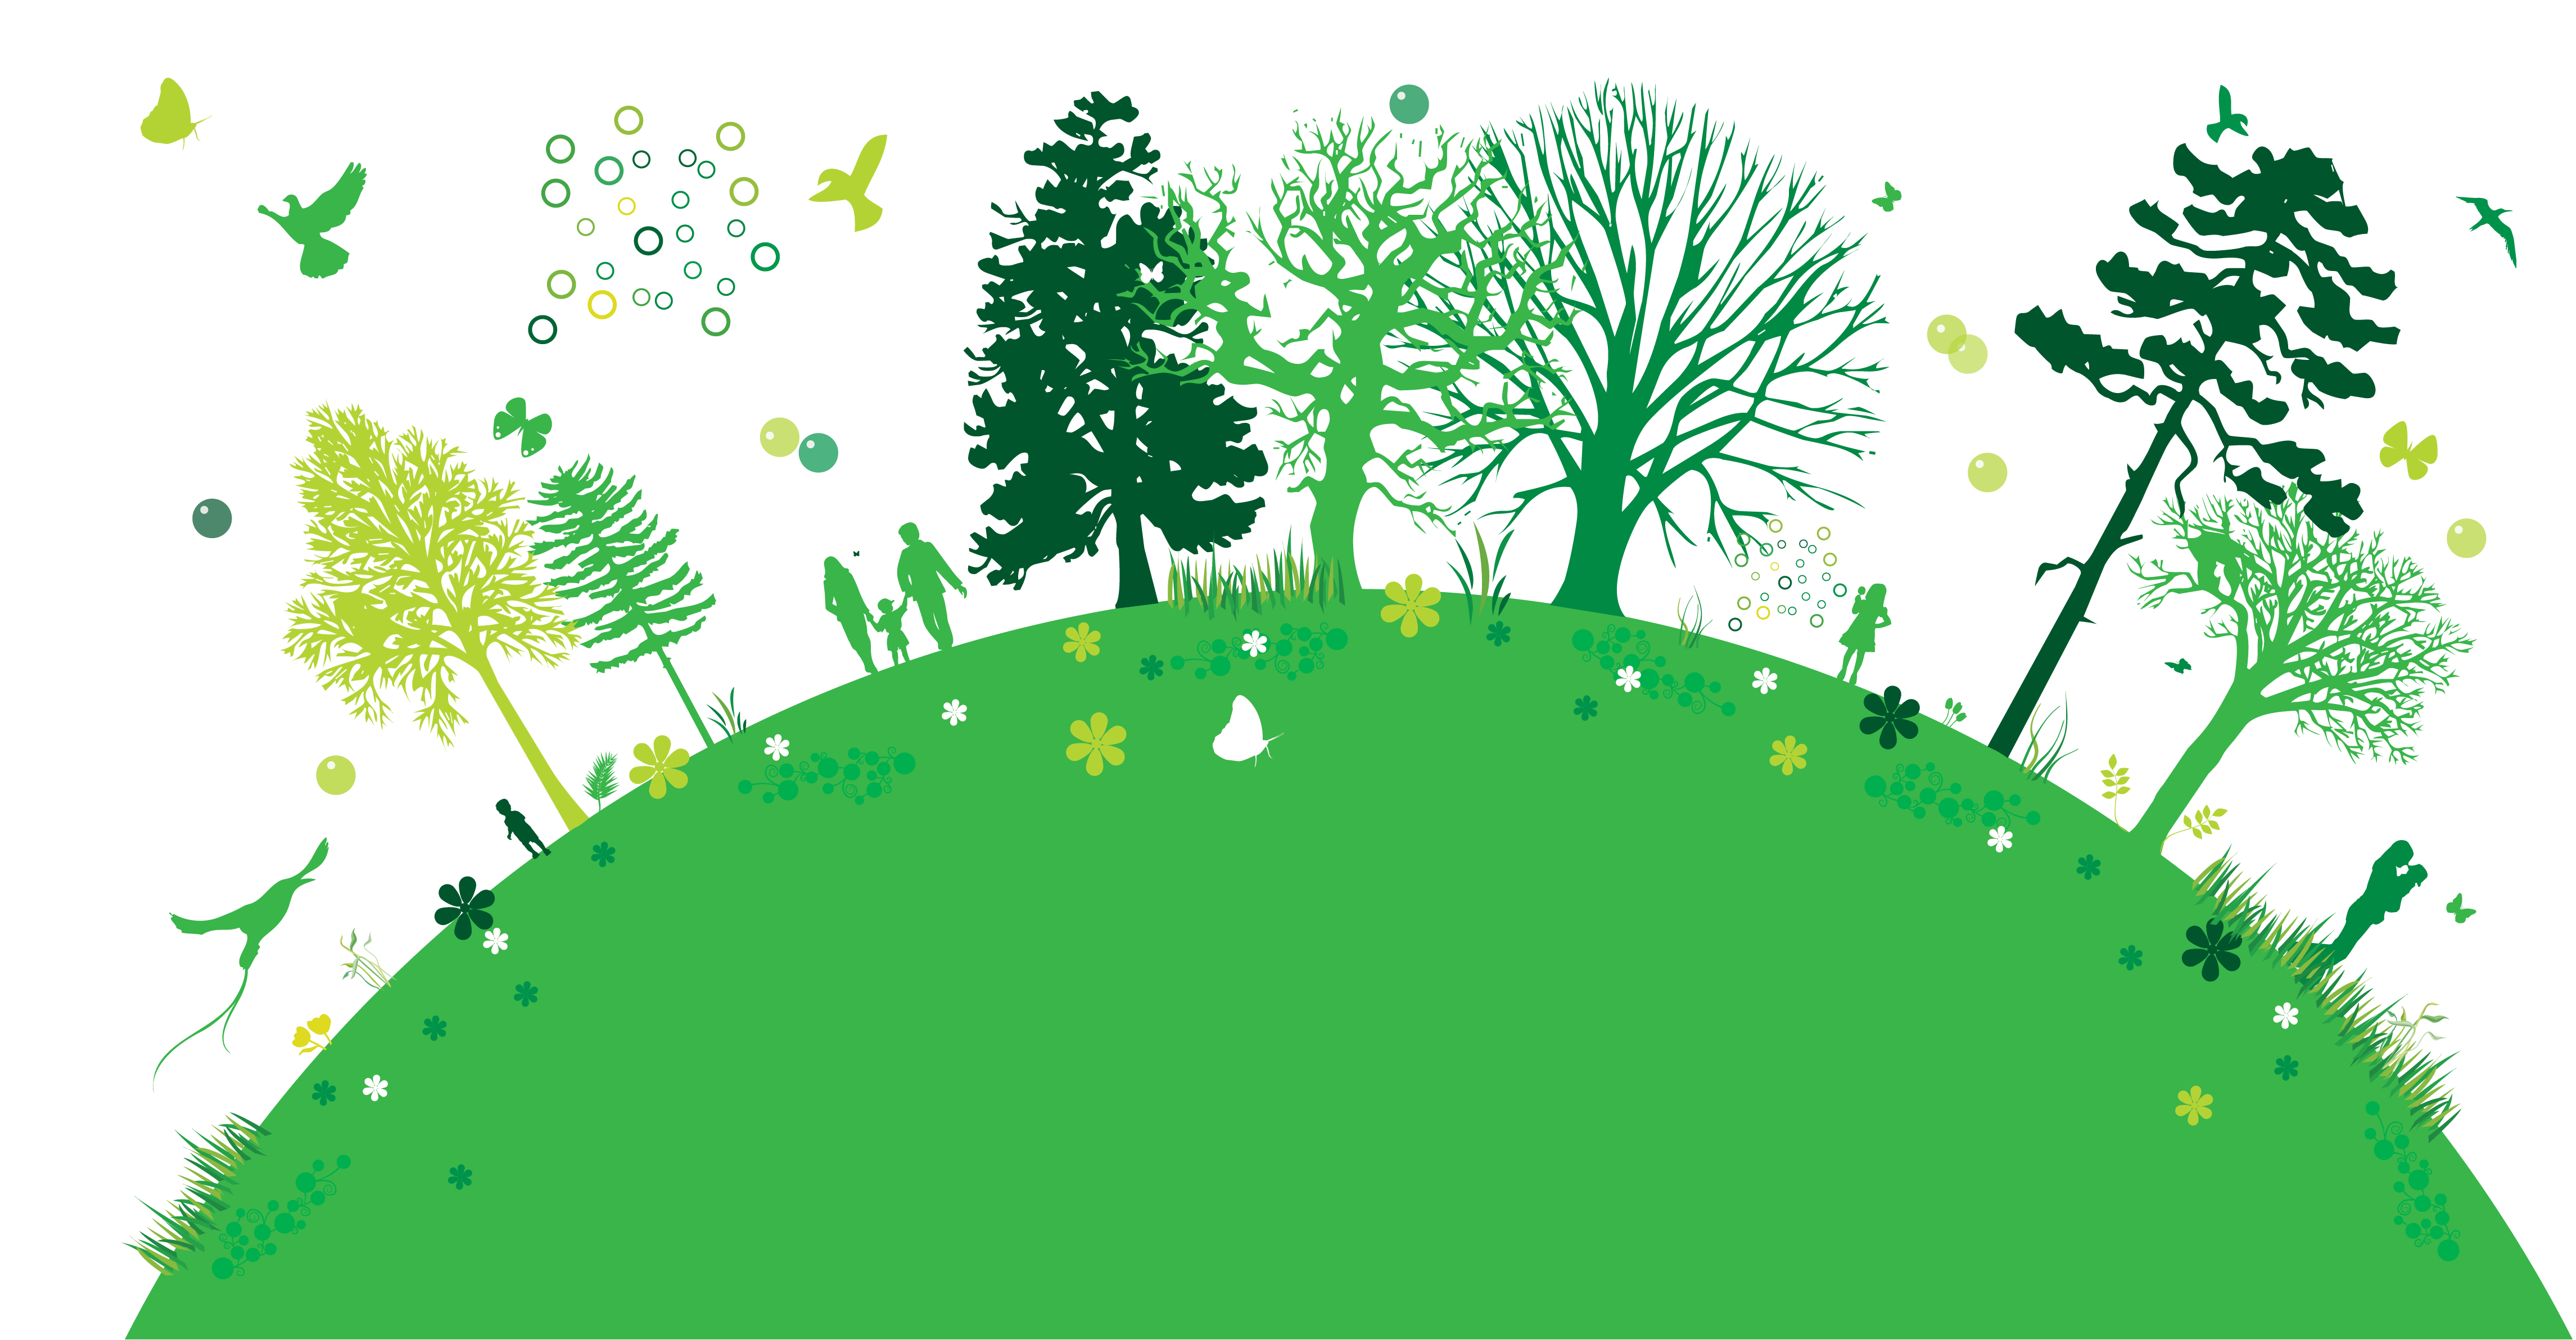 Go green clipart clipart images gallery for free download.